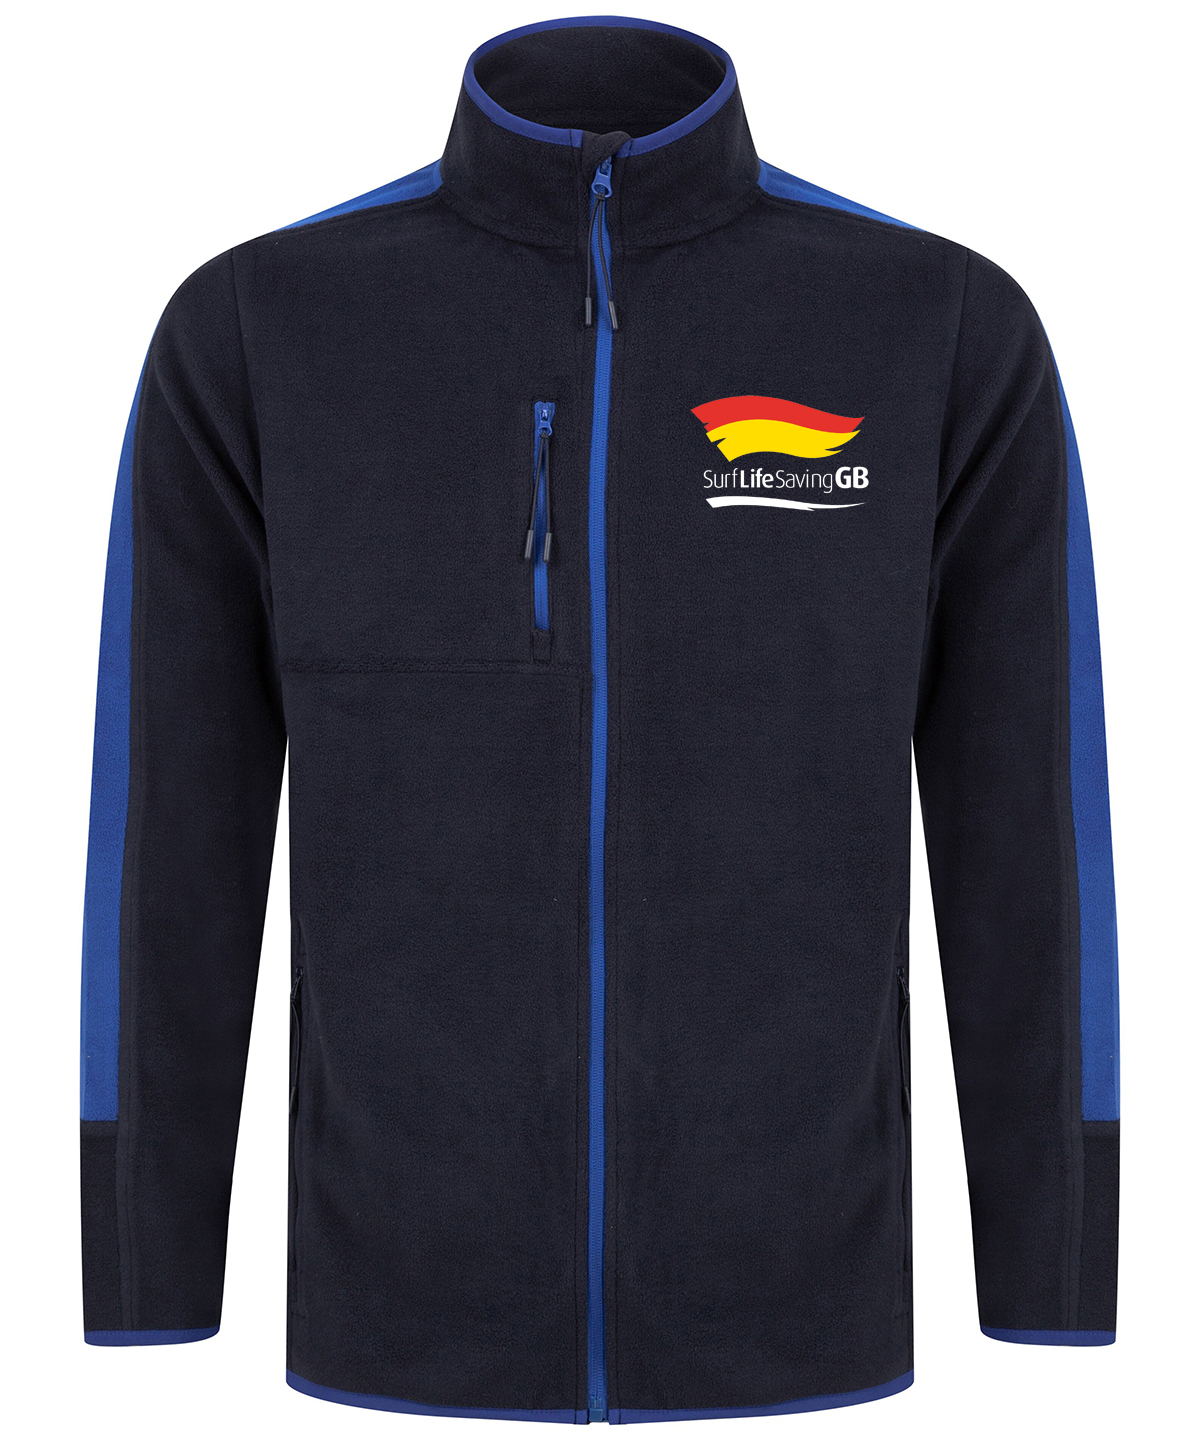 2020 Shoreline Micro Fleece